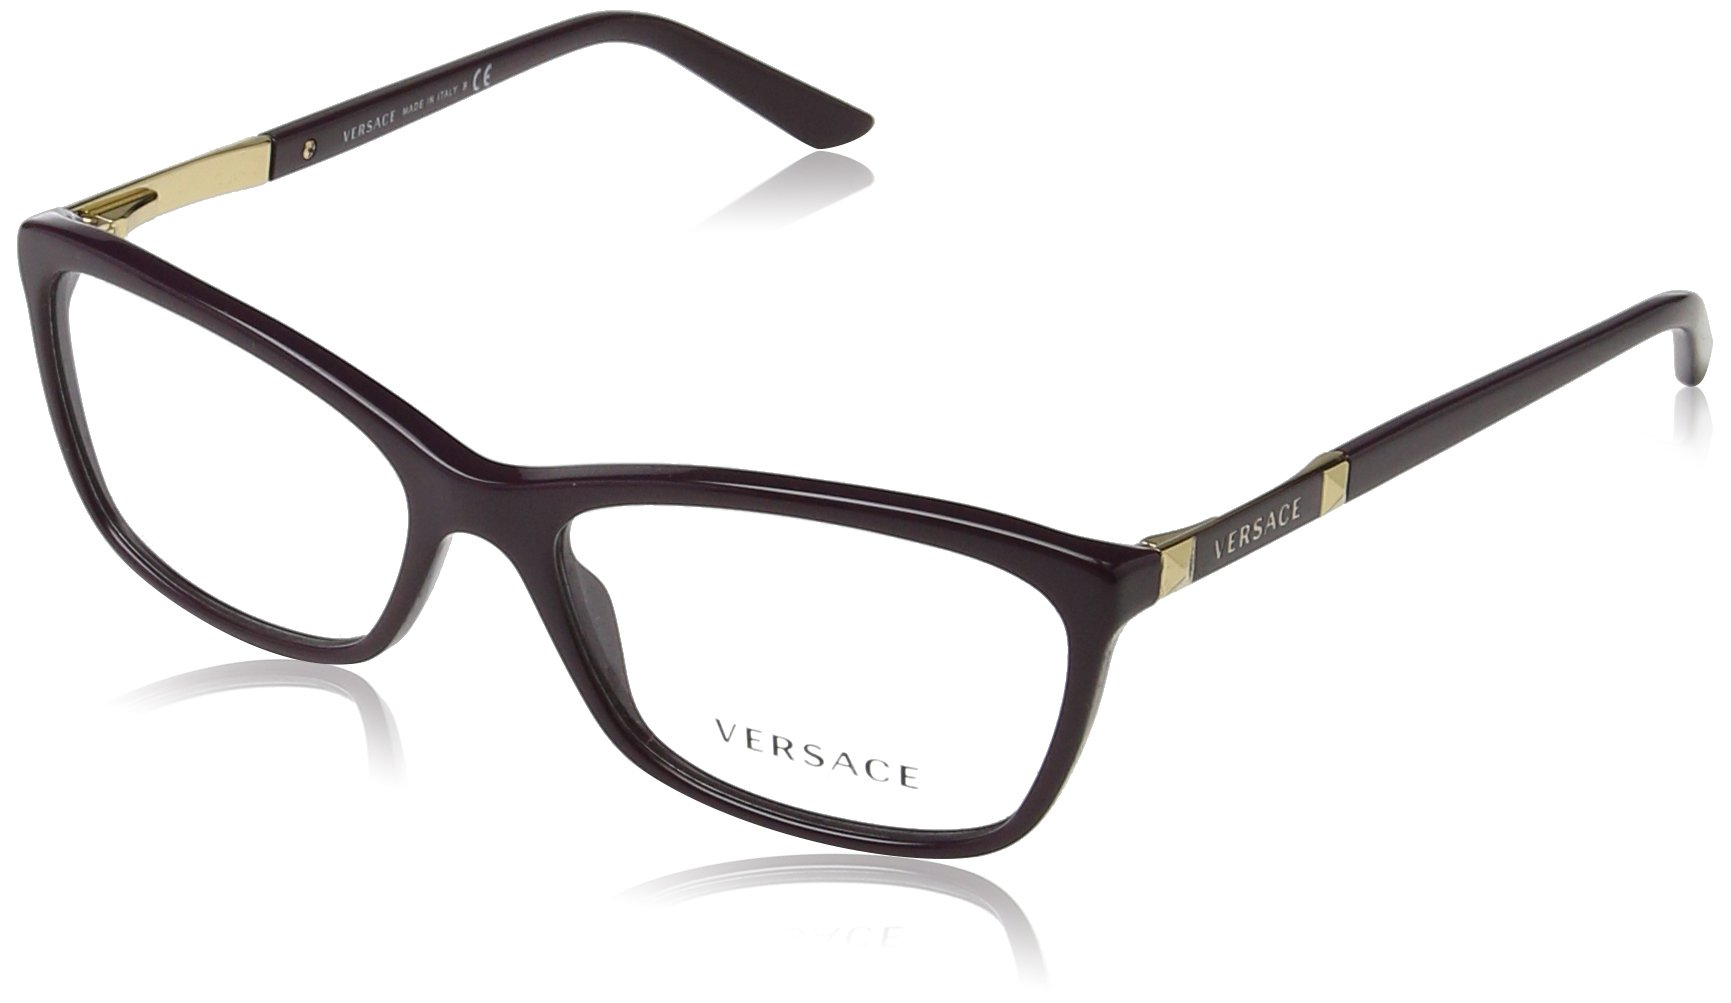 Versace VE3186 Eyeglasses-5066 Eggplant-54mm by Versace